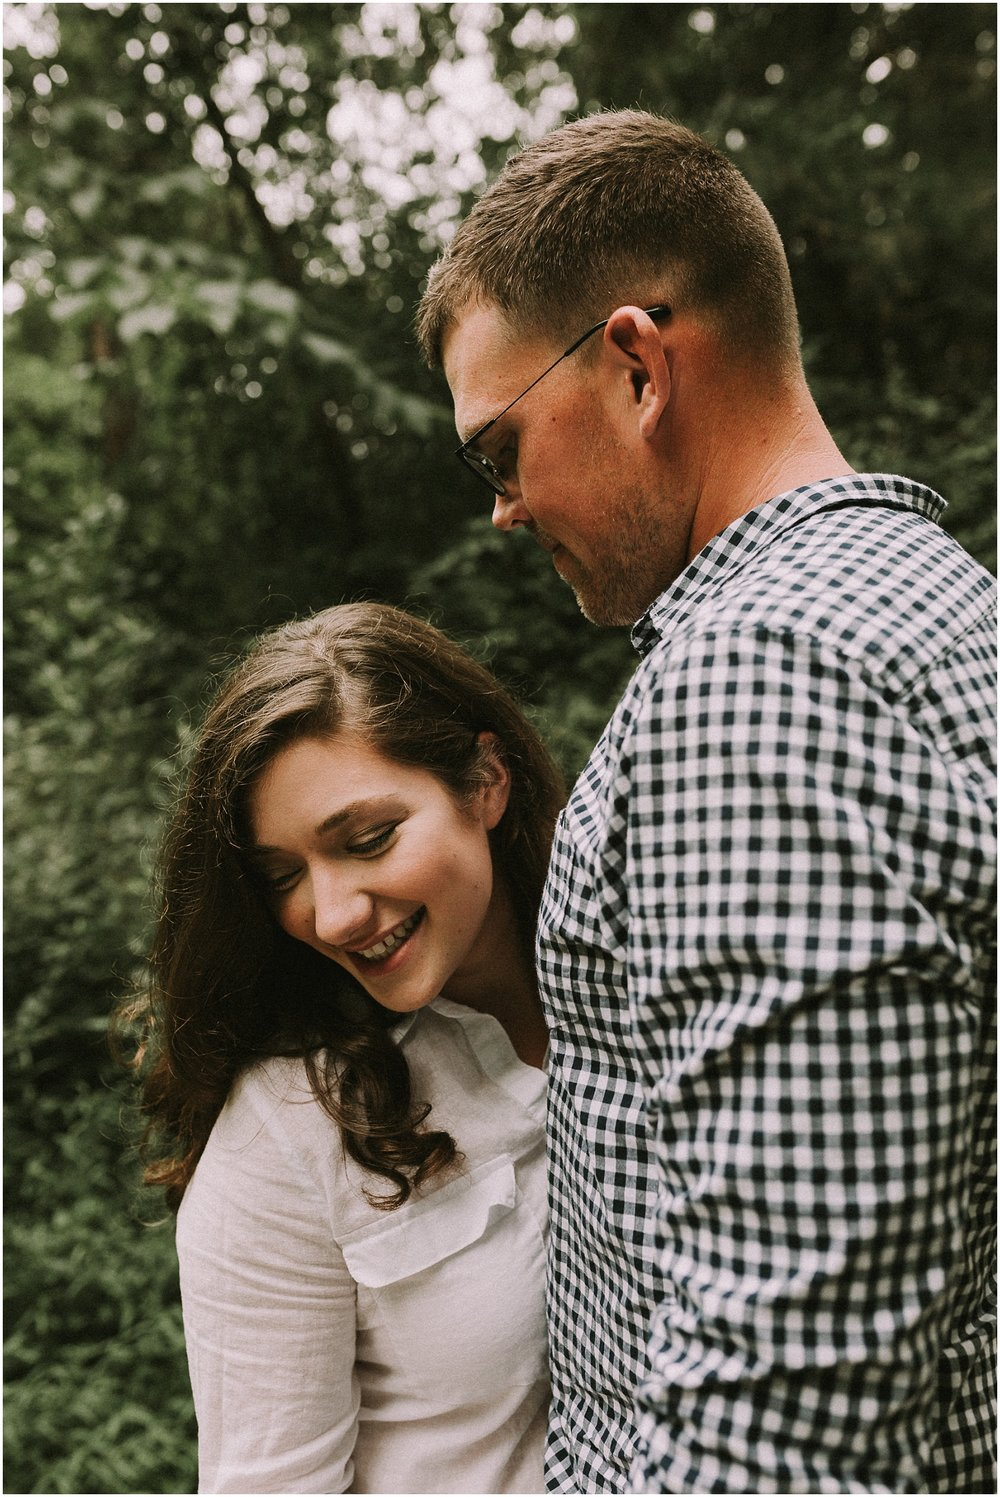 gifford pinchot state park-engagement-anniversary-photo session-outdoor photos-husband-wife-central pennsylvania_0298.jpg